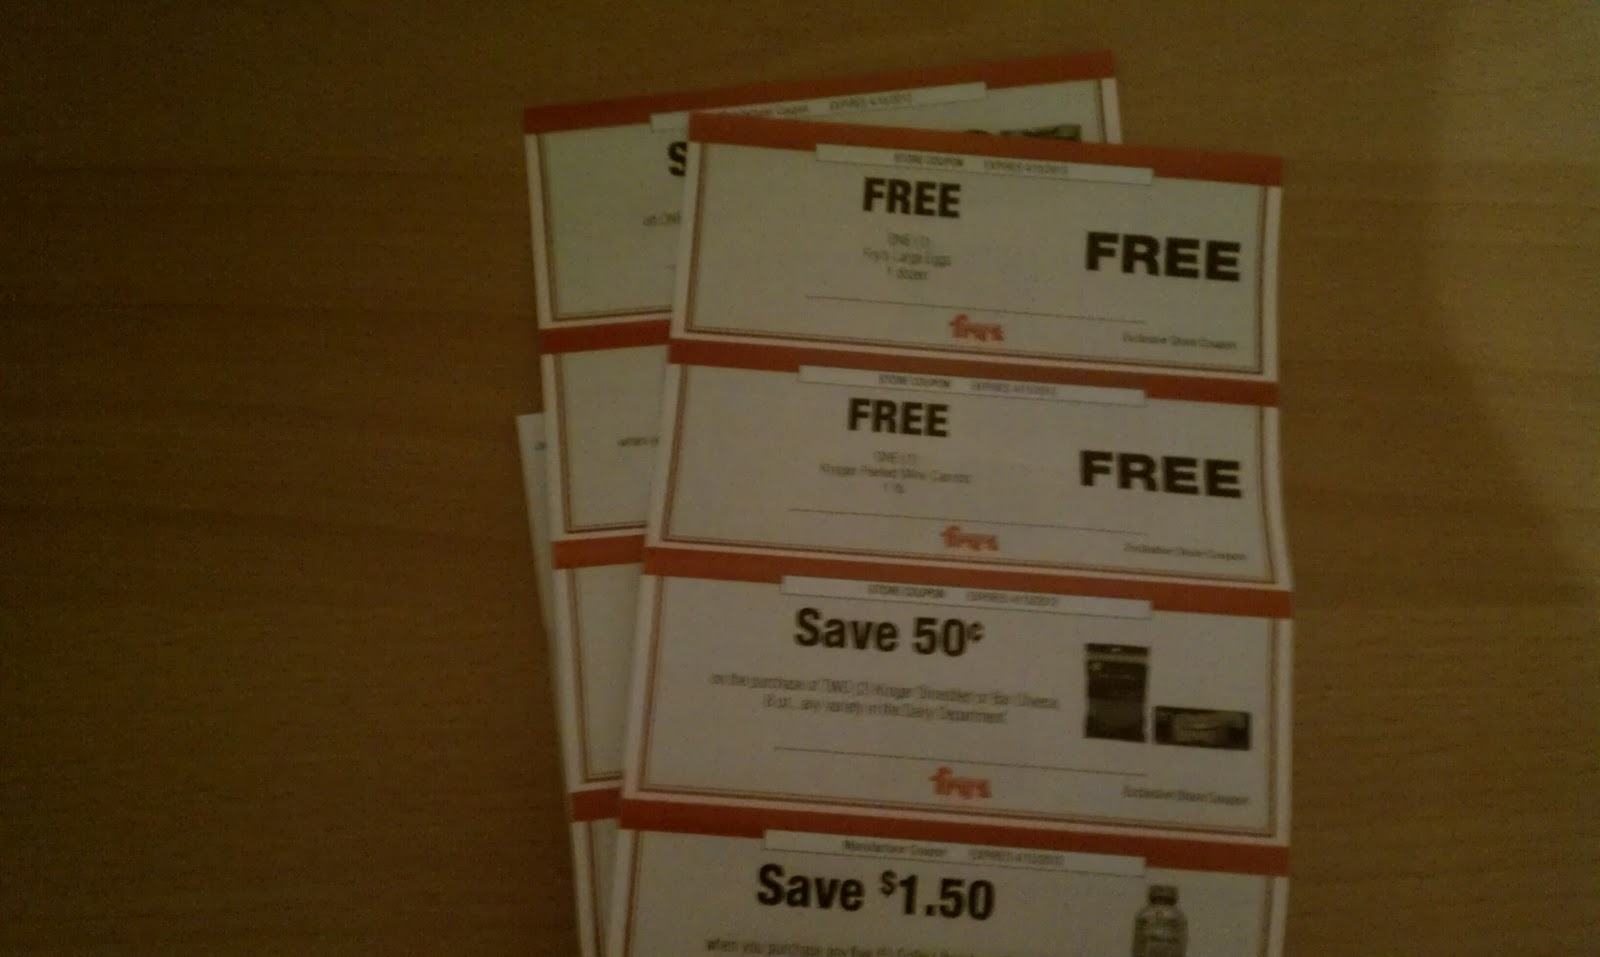 graphic relating to Frys Printable Coupons identify Arizona Procuring Techniques: Frys Quarterly Mailer Coupon codes!